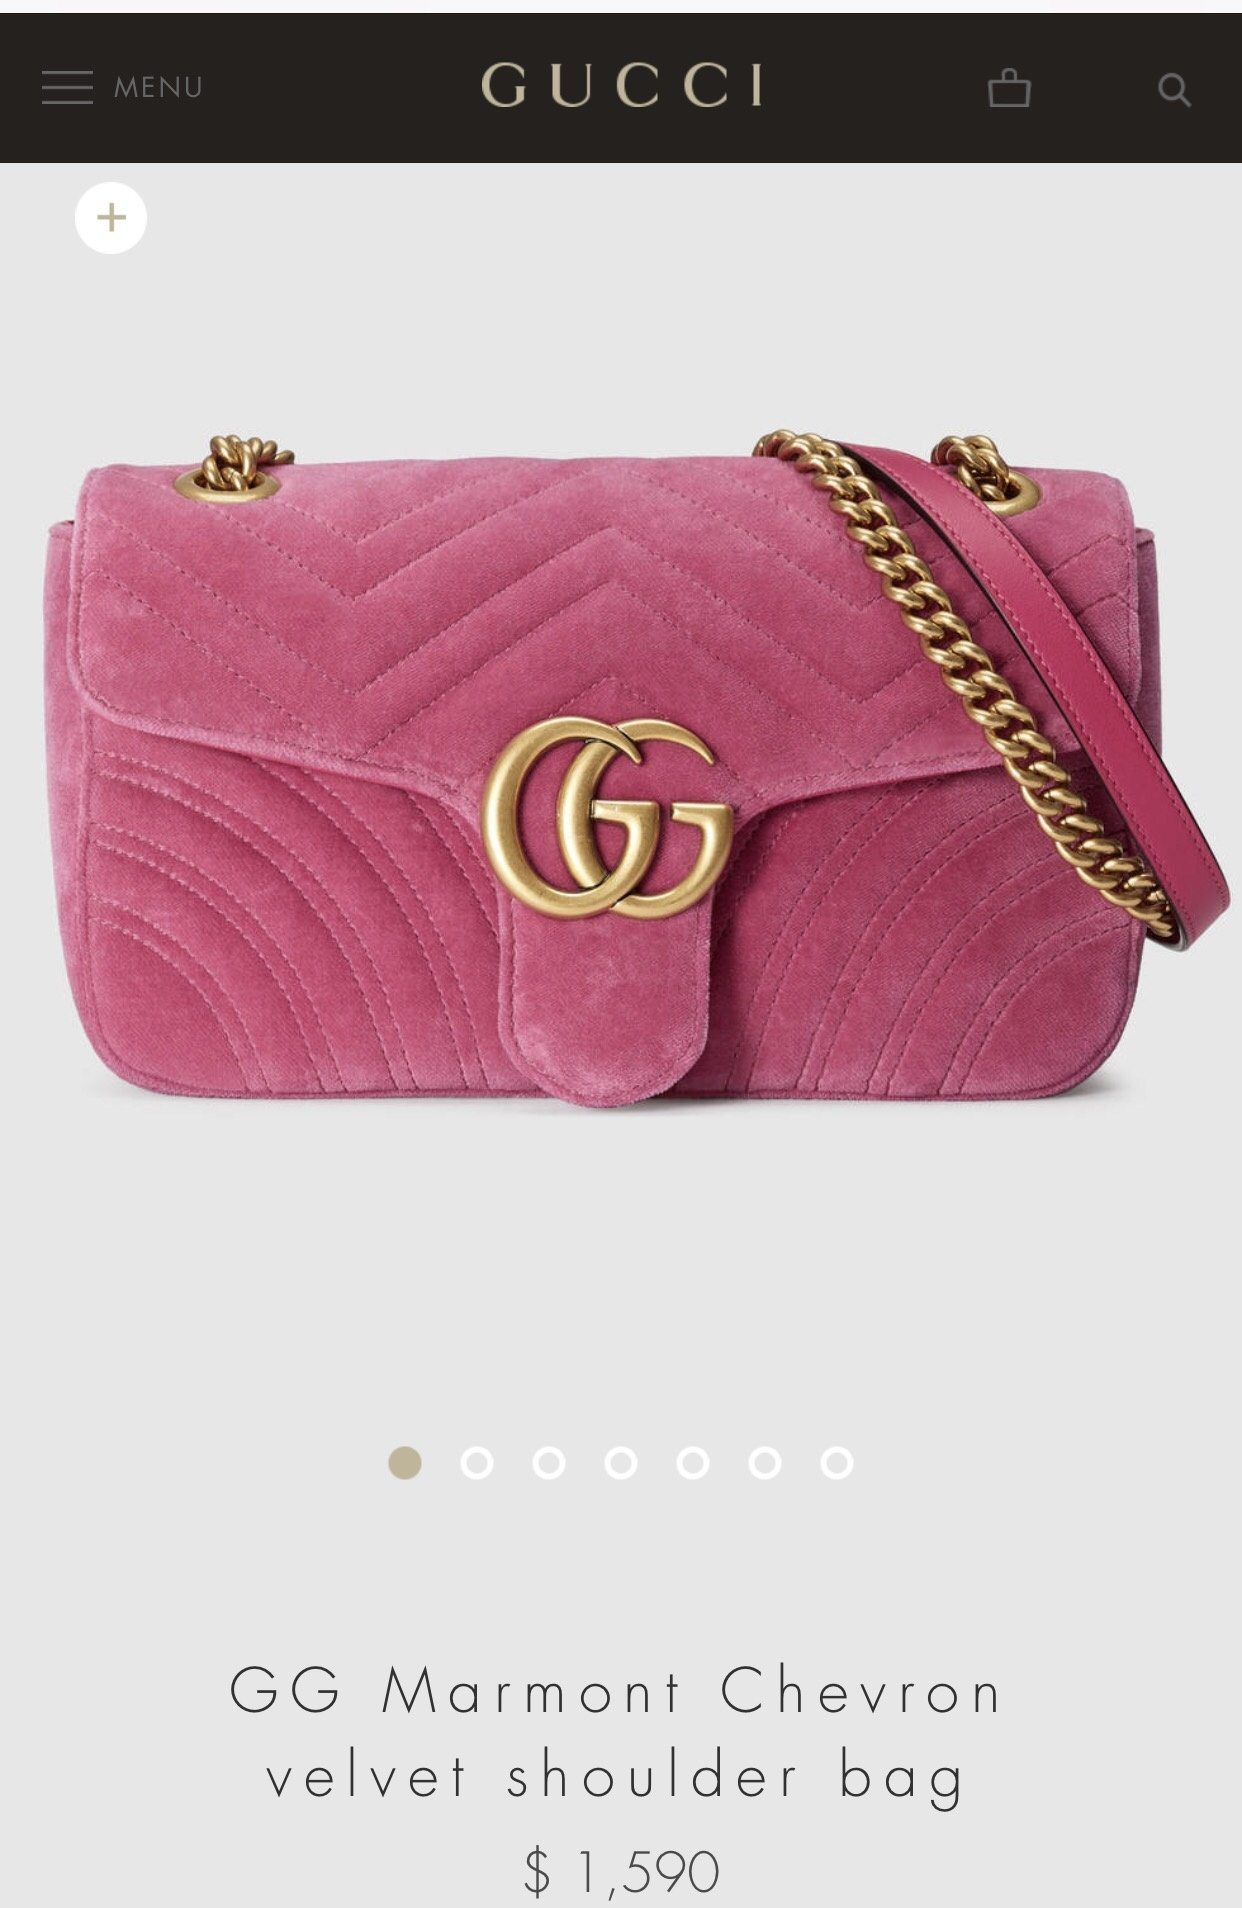 4c2fe97c891032 You'll see with Gucci, the same thing is true as well. You can get in with  an 'entry level bag' for roughly the same price as an entry level Louis  Vuitton.